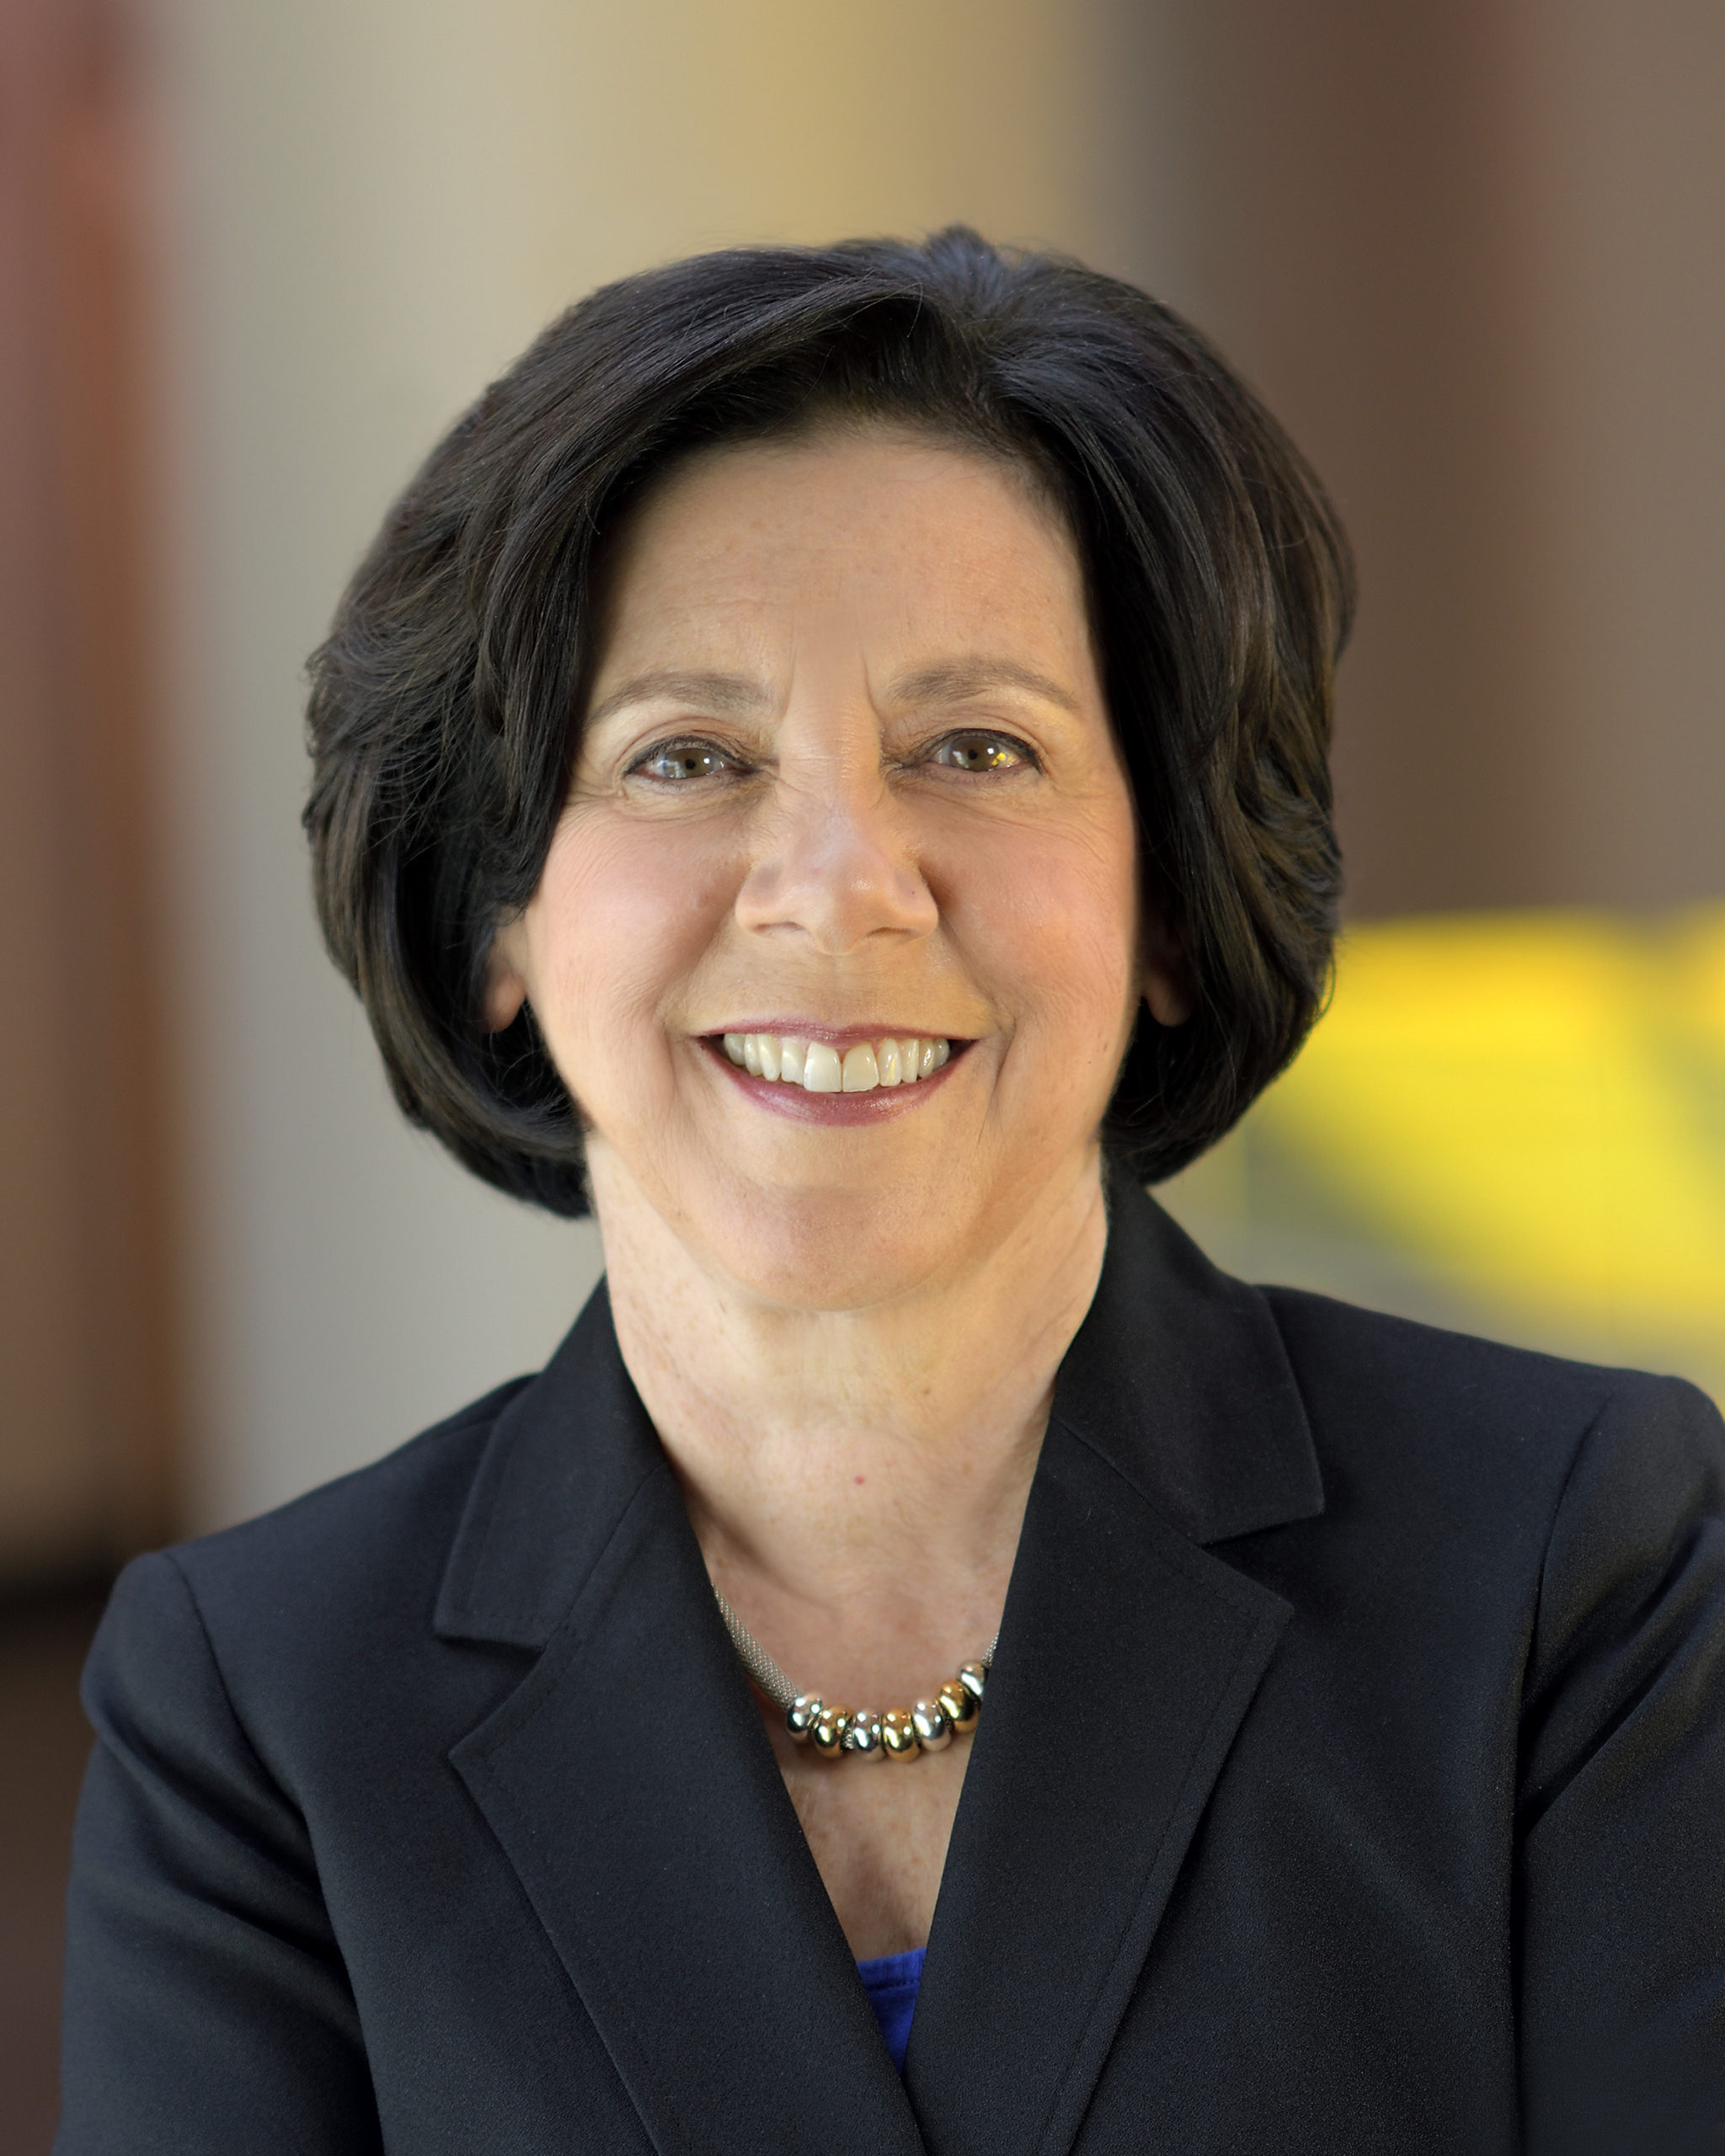 Montgomery County Community College's VP of Information Technology serves as 2019 commencement speaker